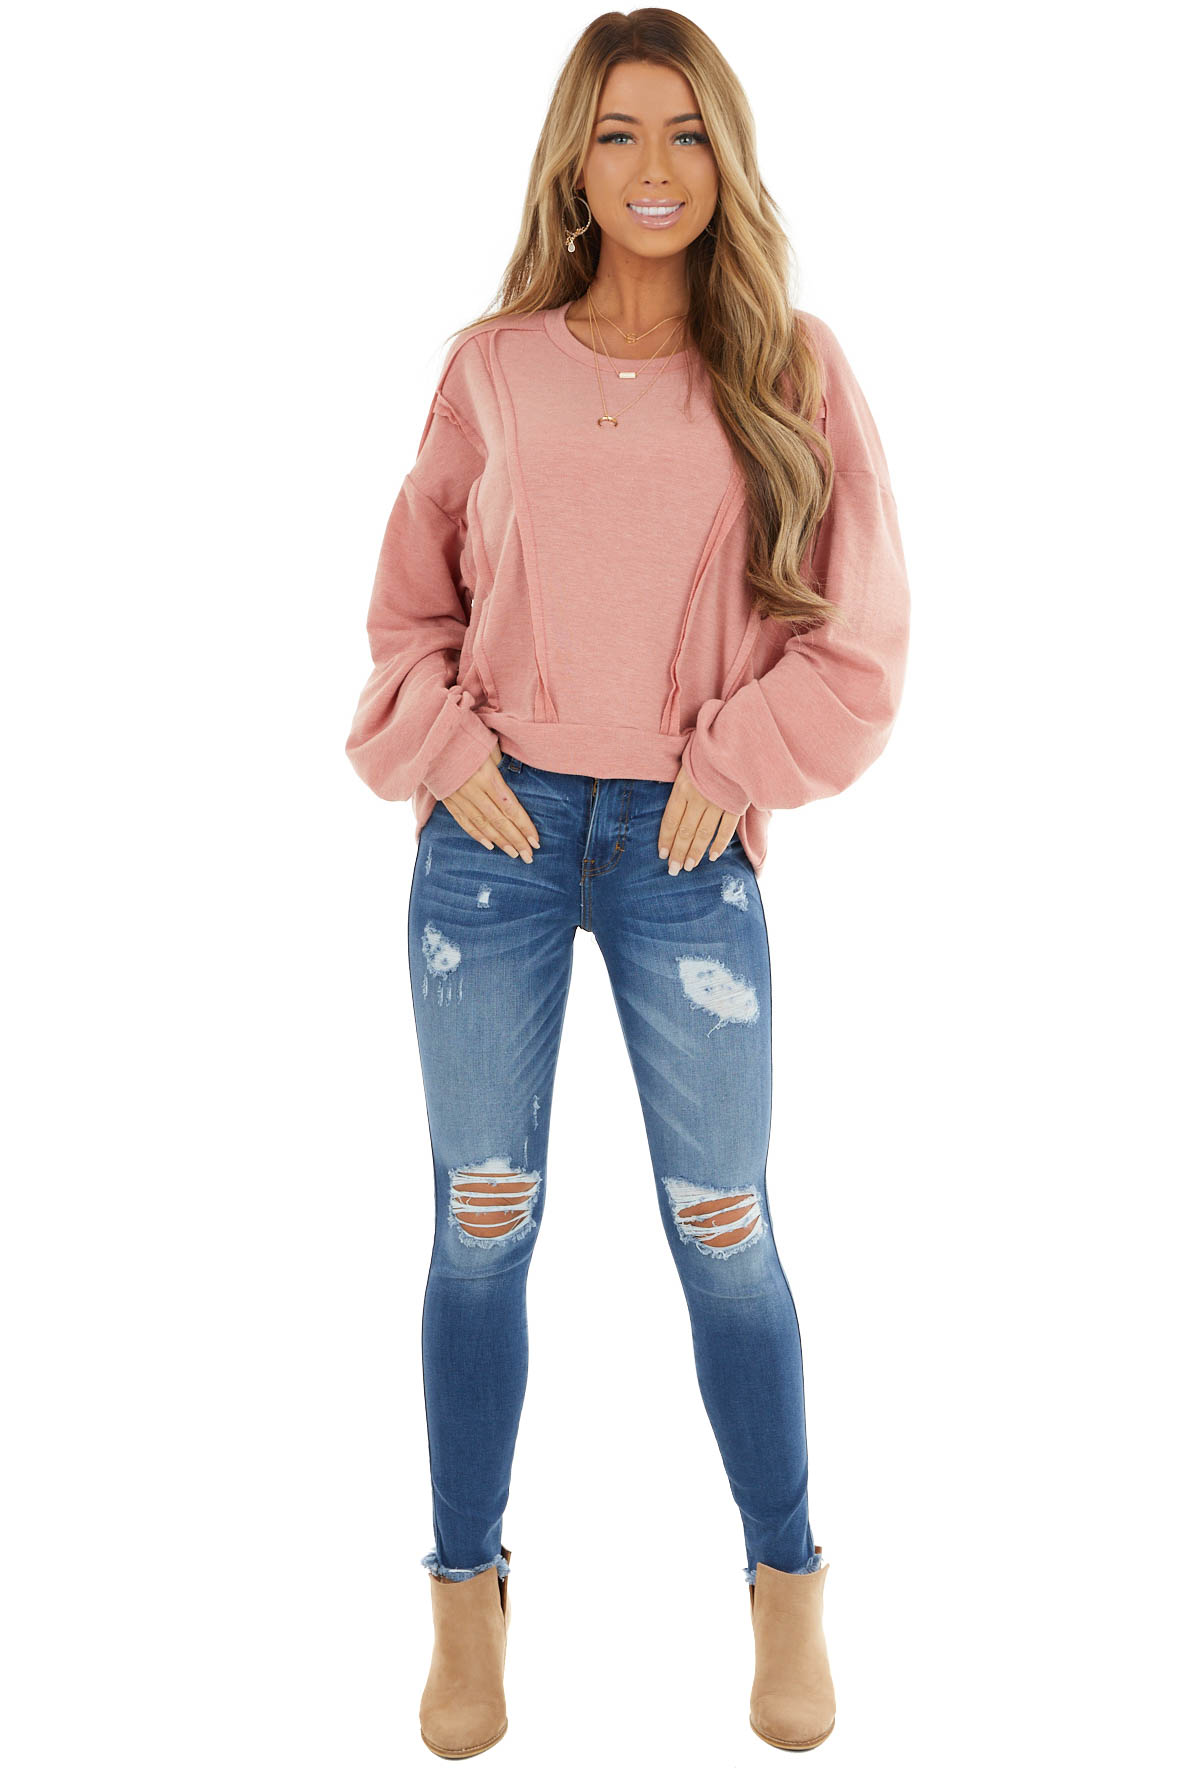 Dusty Coral Stretchy Long Sleeve Top with Raw Edge Details